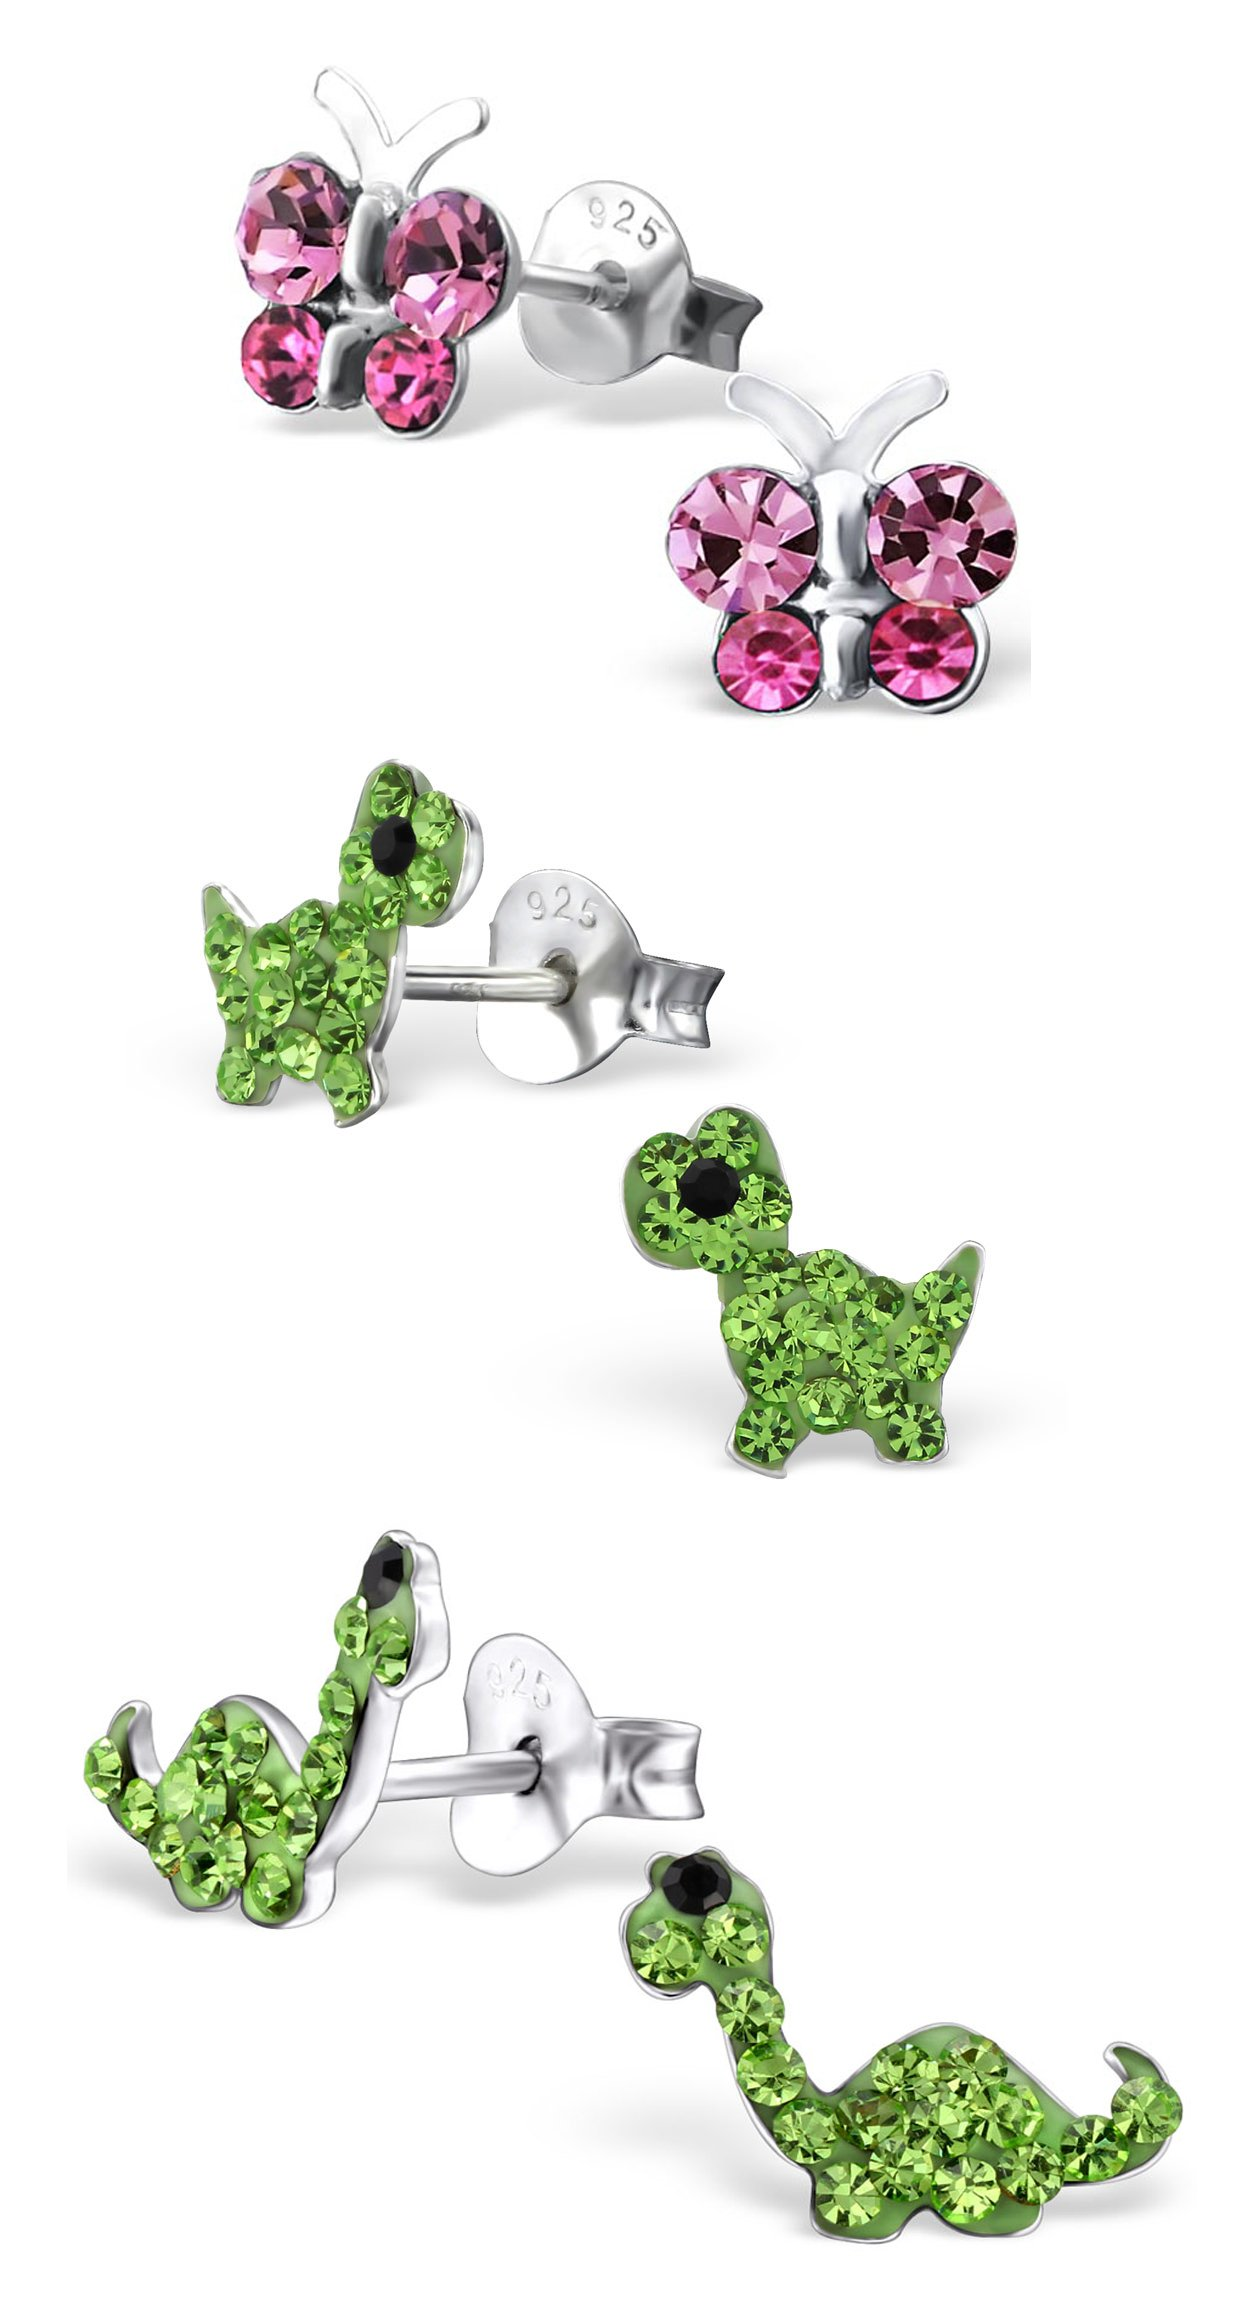 Best Wing Jewelry .925 Sterling Silver''Butterfly and Dinosaur'' Set Stud Earrings for Children and Teens (3 Pairs) by Best Wing Children's Earrings (Image #1)